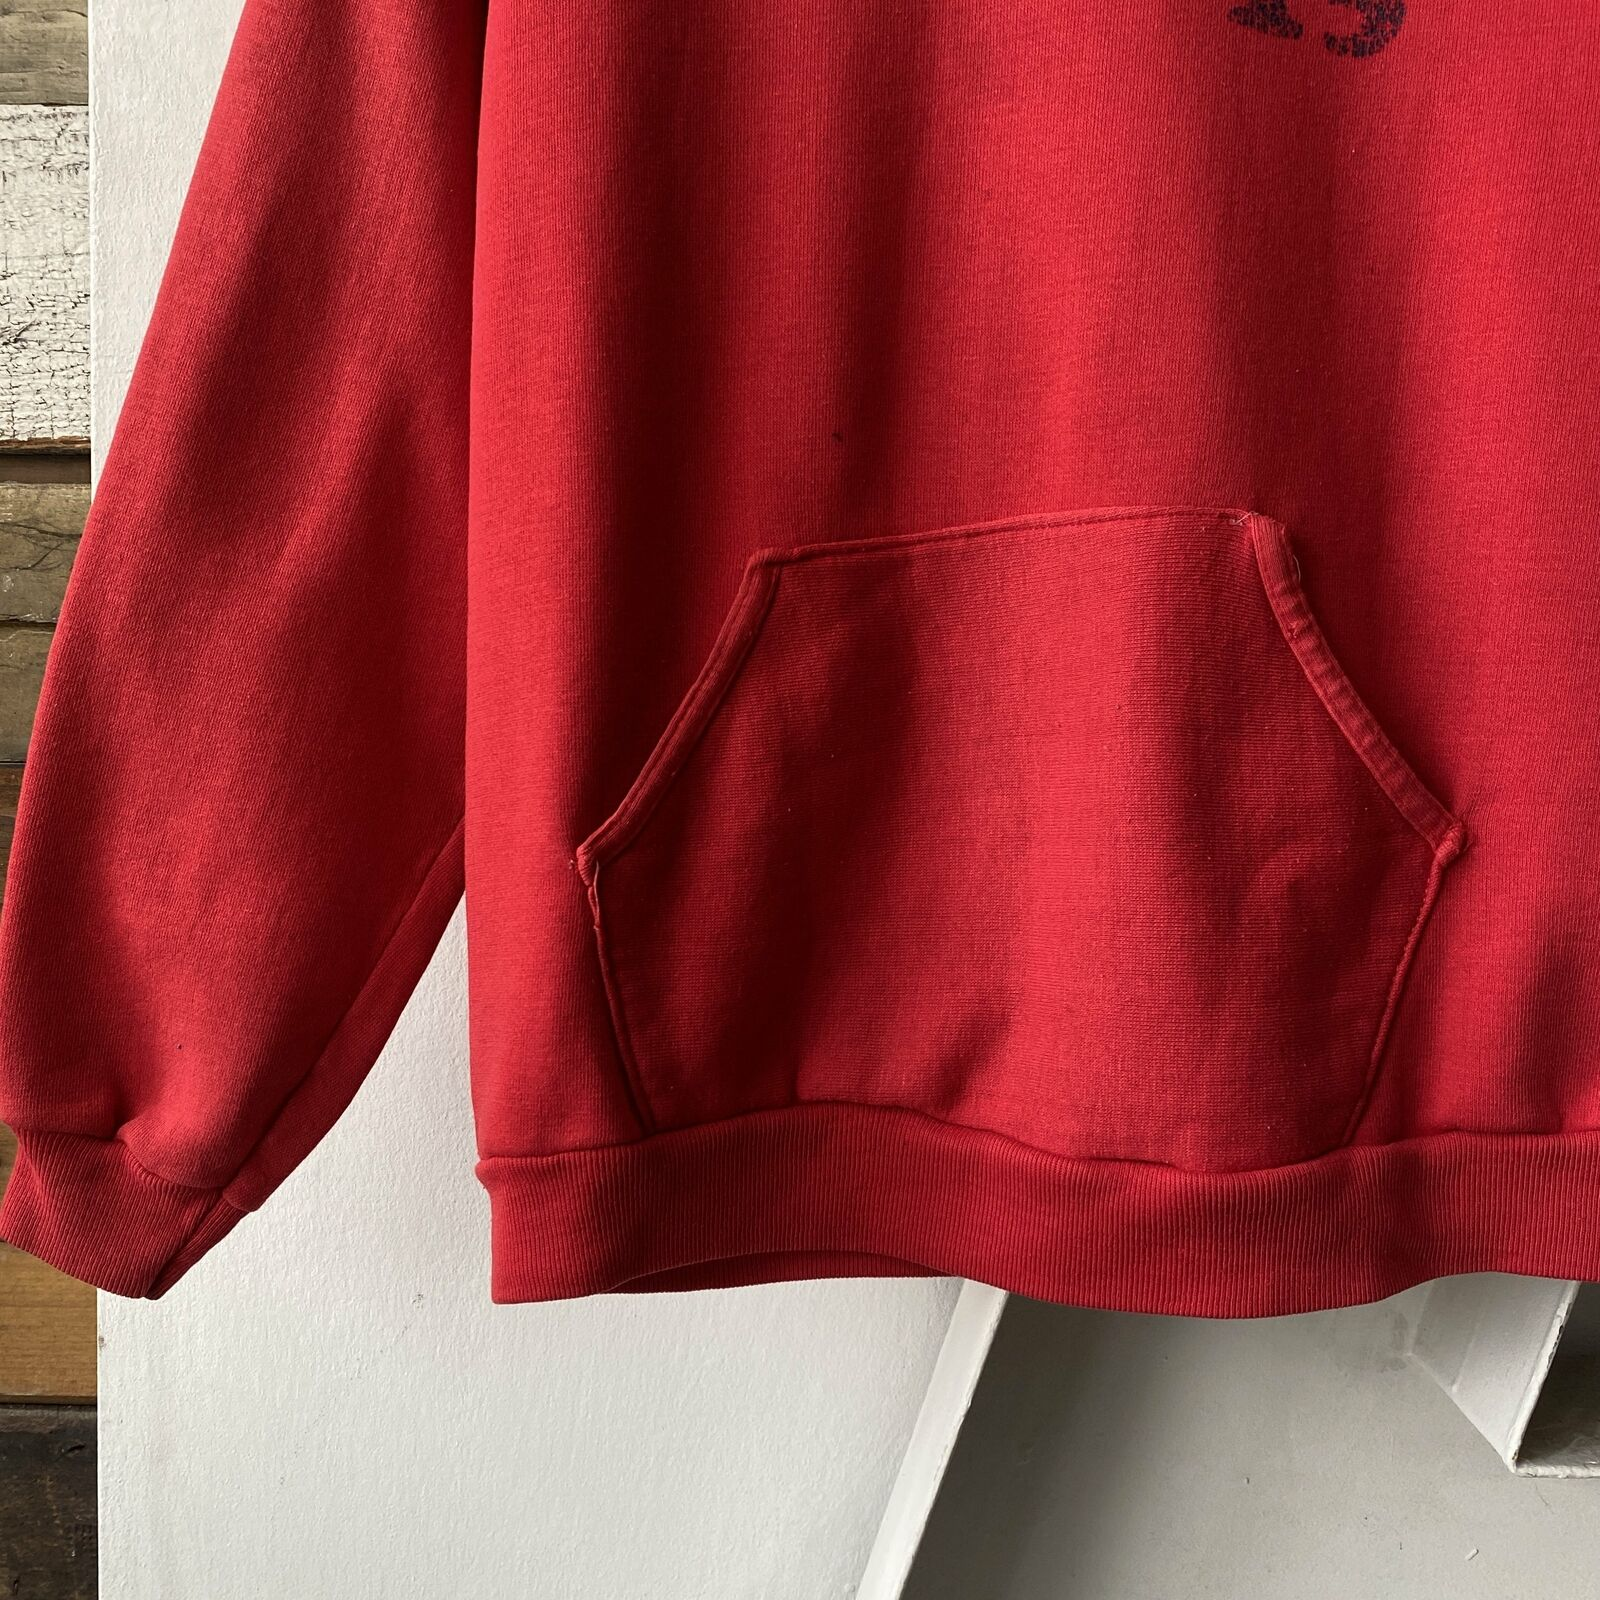 Vintage 70s Russell Hoodie - Small north marion t… - image 3